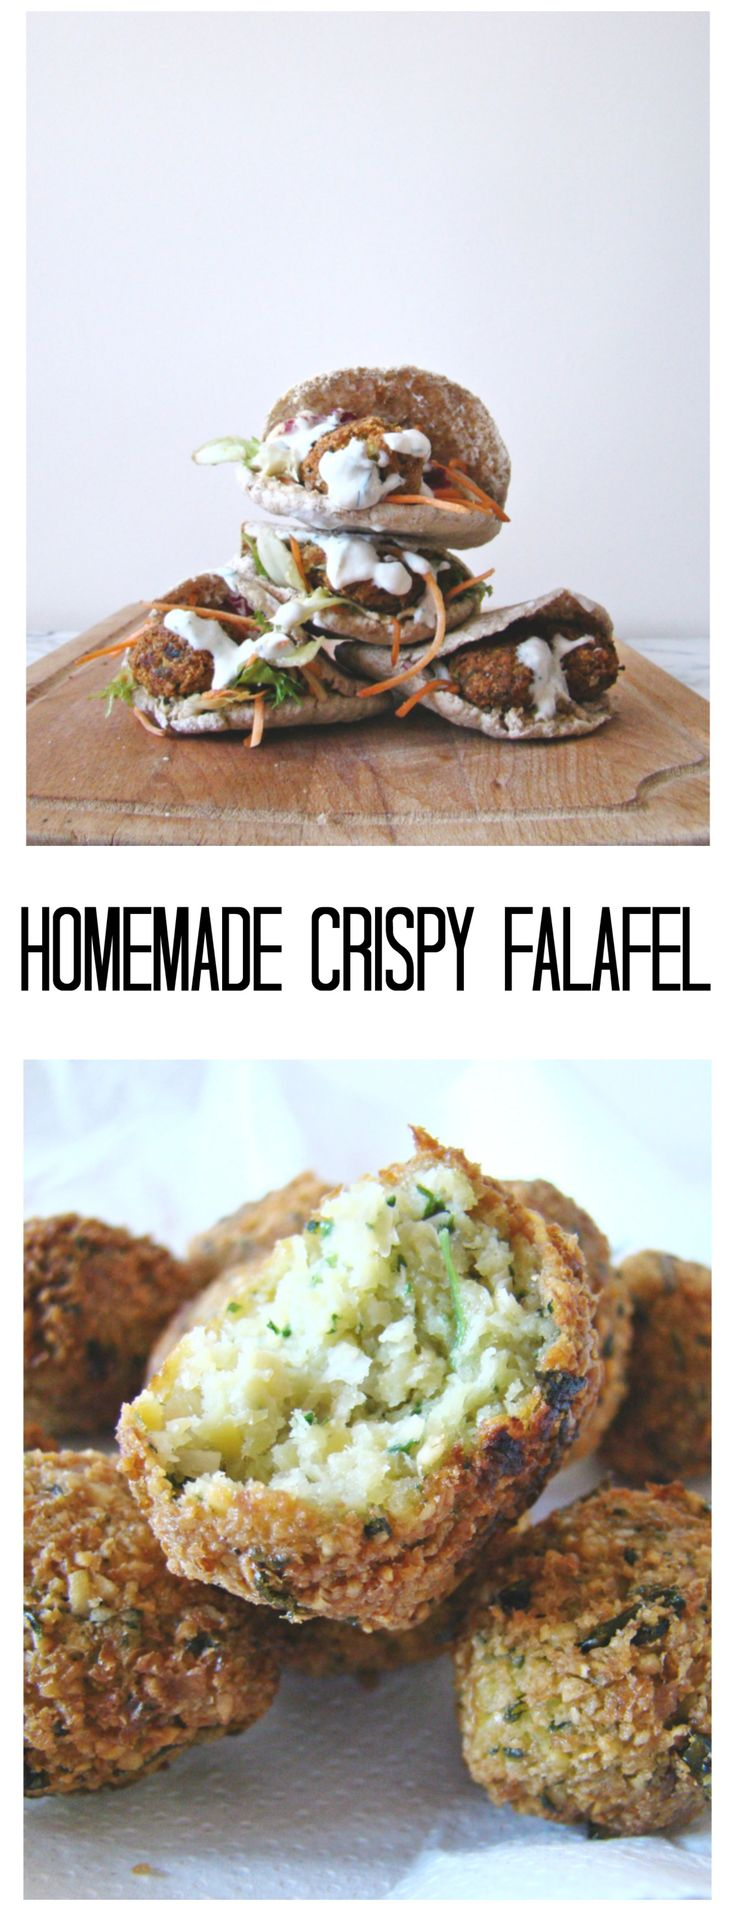 These Homemade Crispy Falafel are extremely tasty and super easy to make. You can make a big batch of batter and freeze for later.